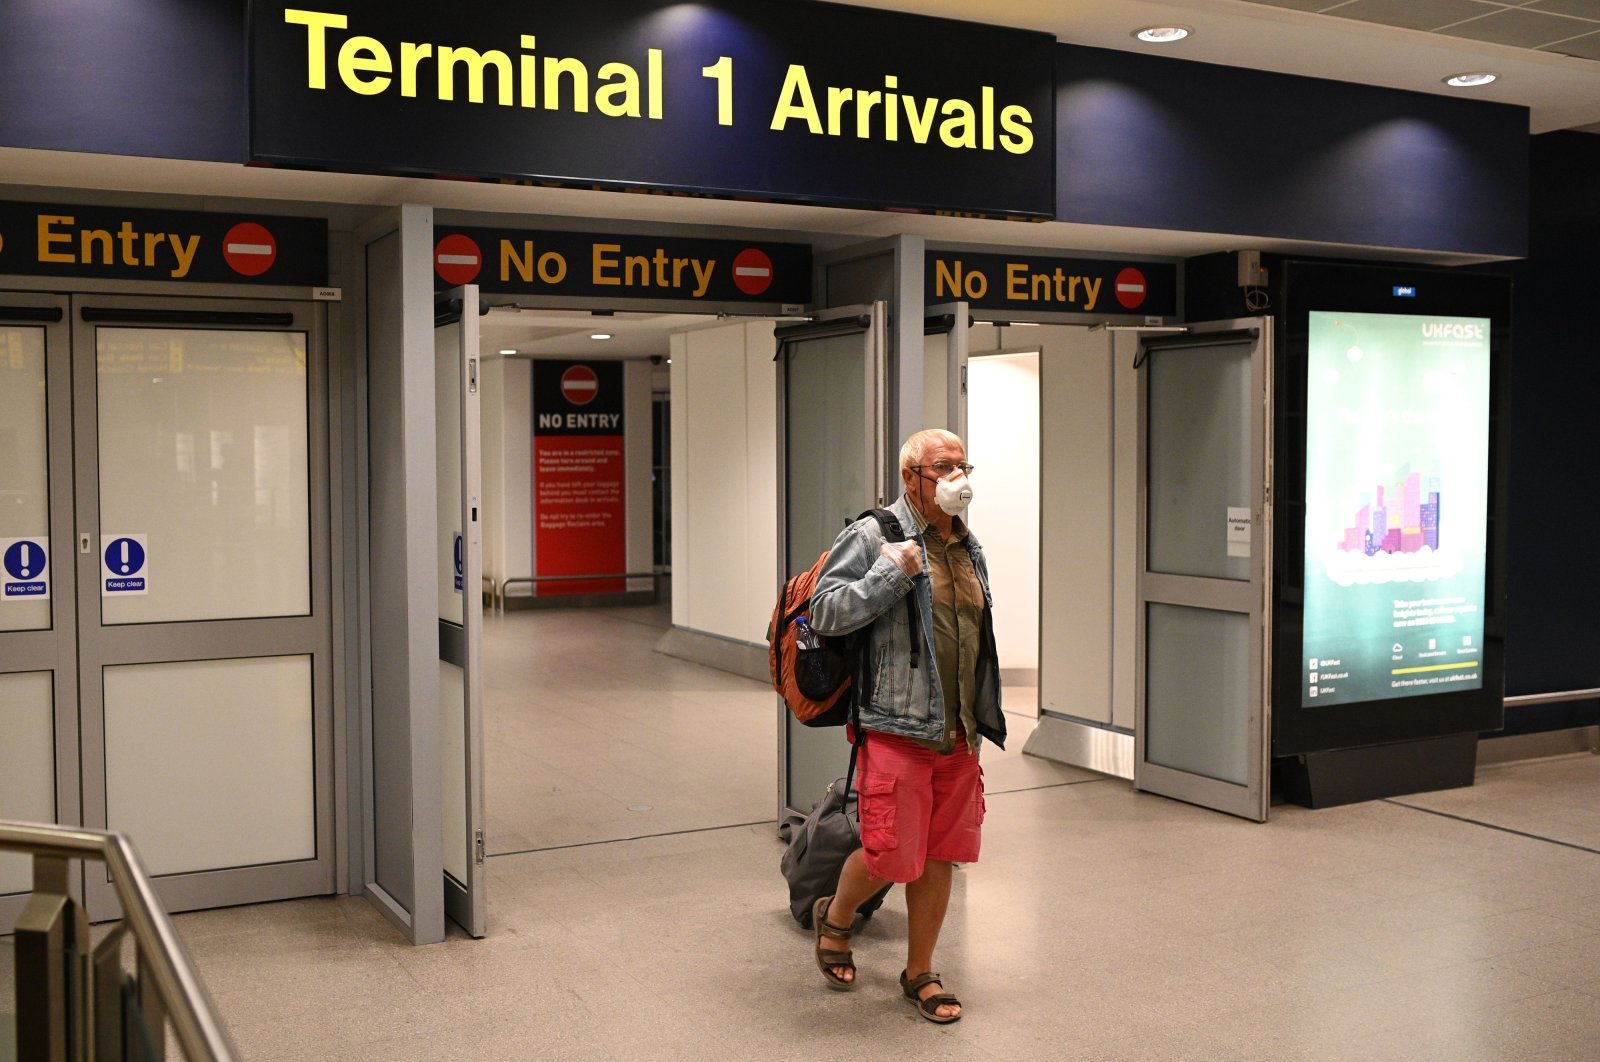 In this file photo taken on June 8, 2020 a passenger wearing PPE (personal protective equipment), including a face mask as a precautionary measure against COVID-19, arrives at Terminal 1 of Manchester Airport in north west England. (AFP Photo)